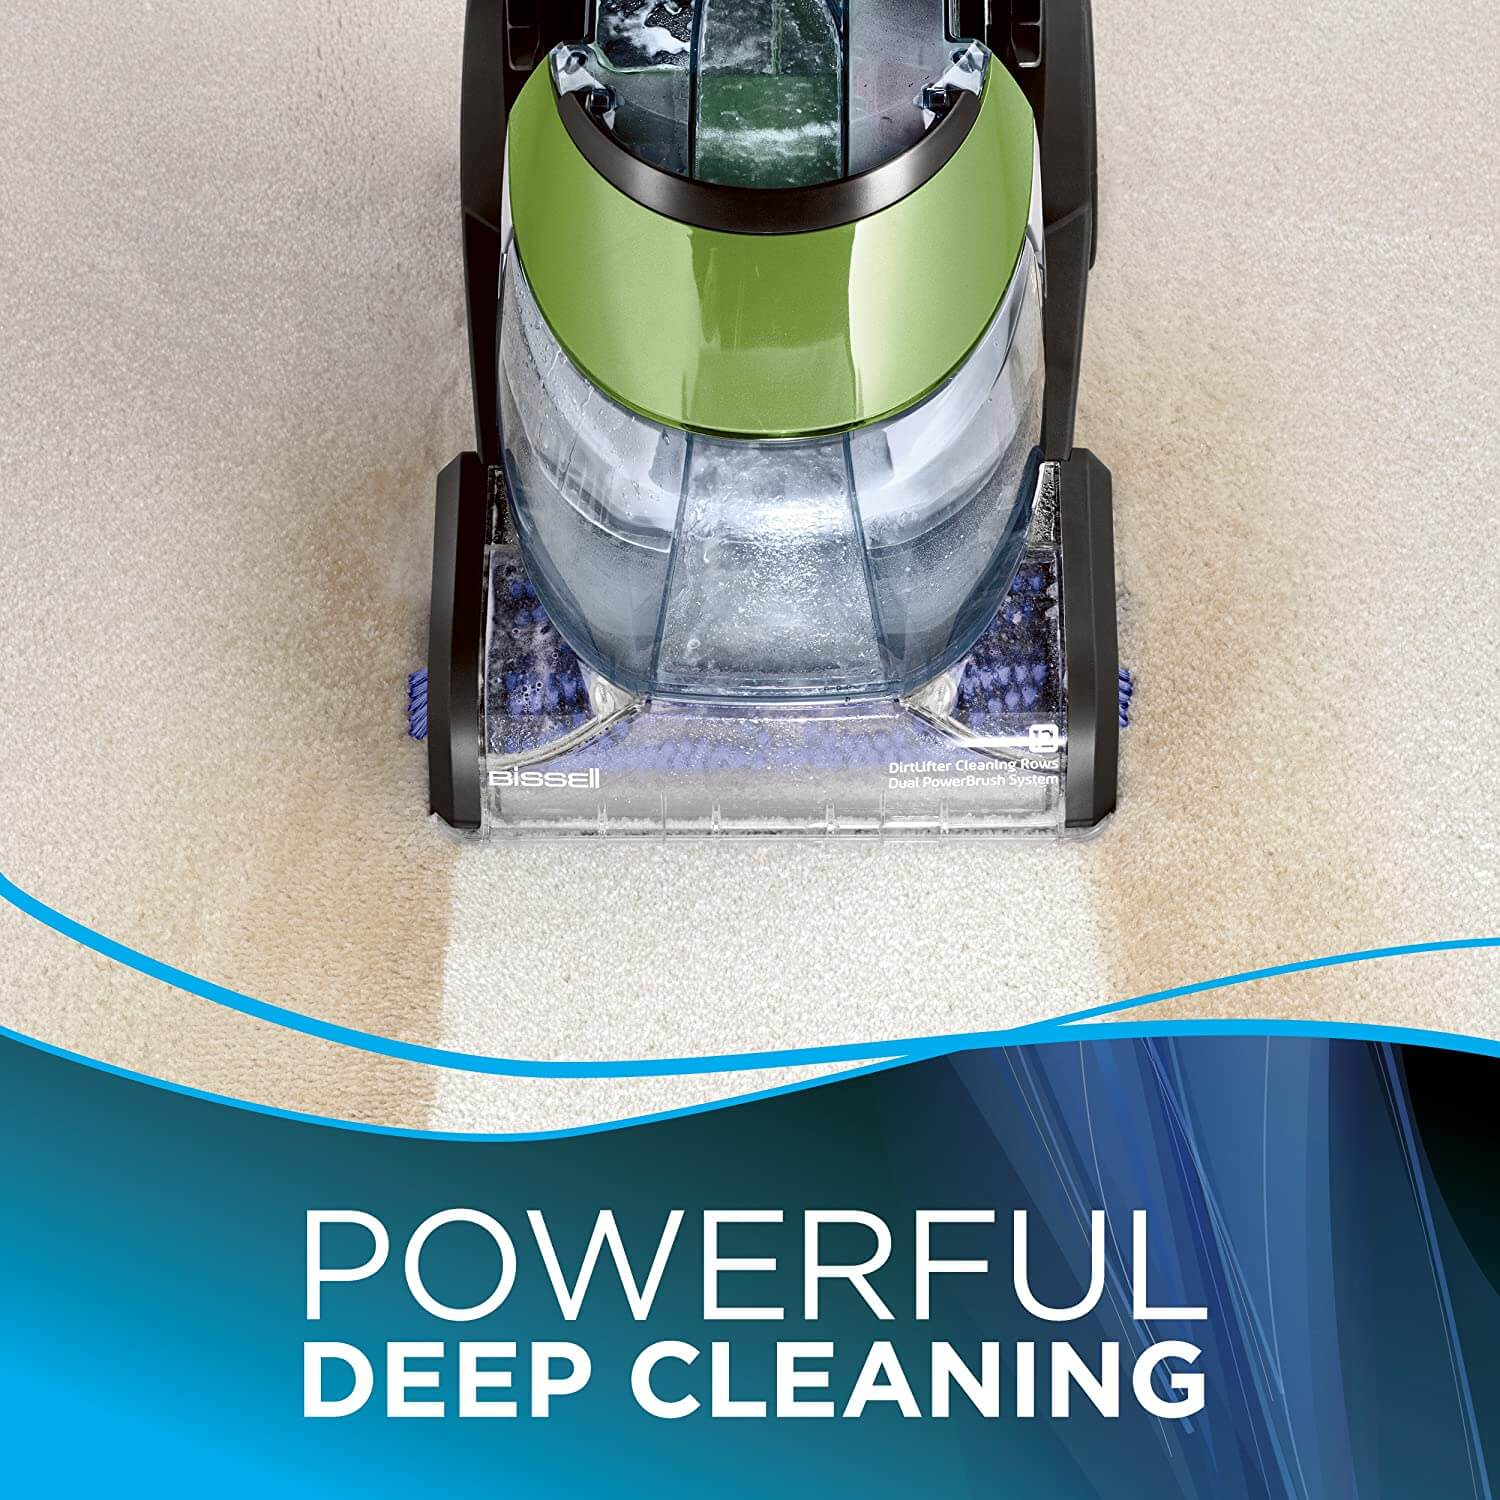 BISSELL DeepClean Premier Pet Carpet Cleaner, 17N4, Grey